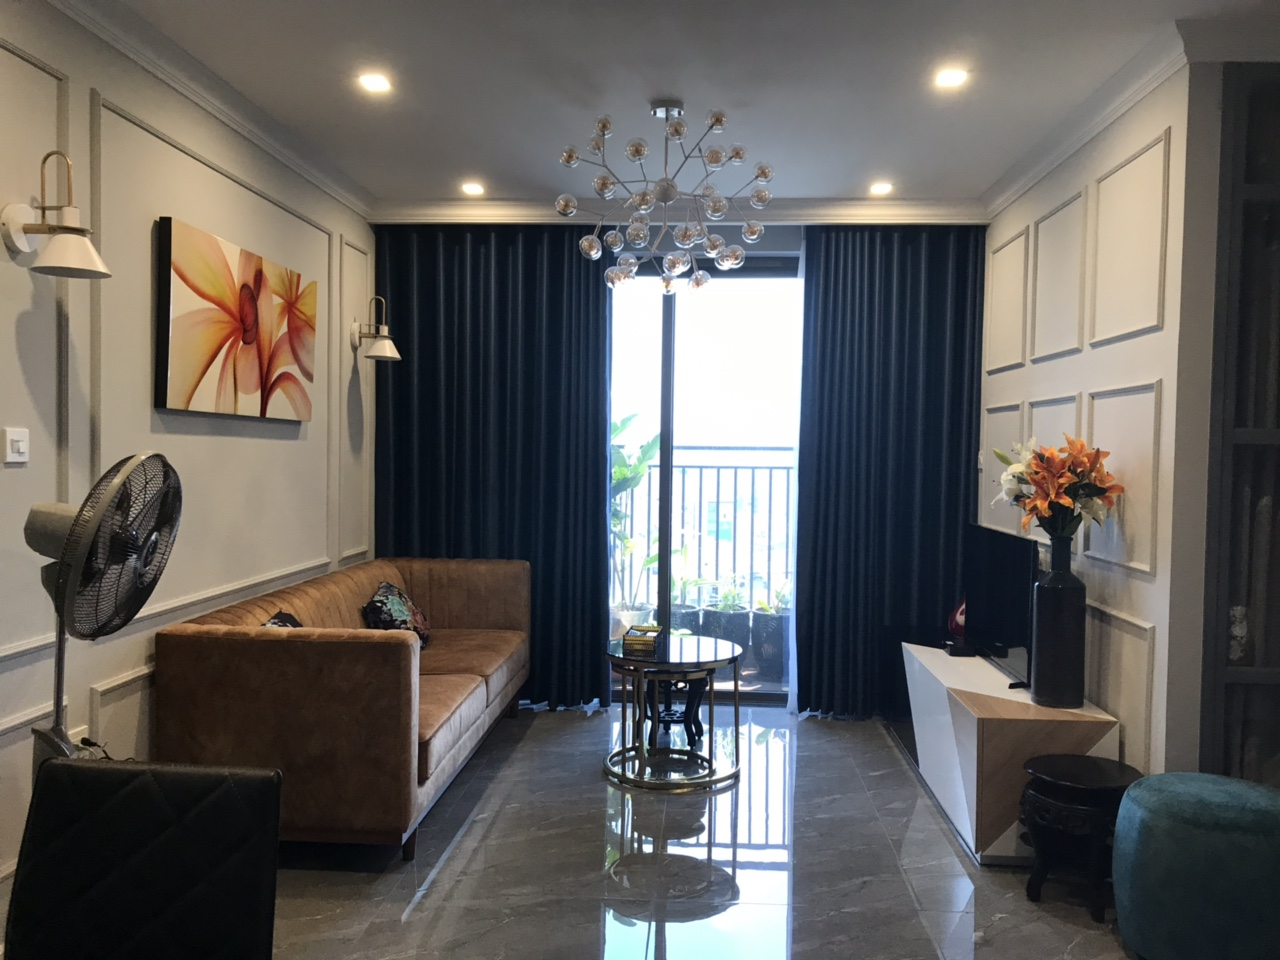 Apartment for rent BT107626 (5)